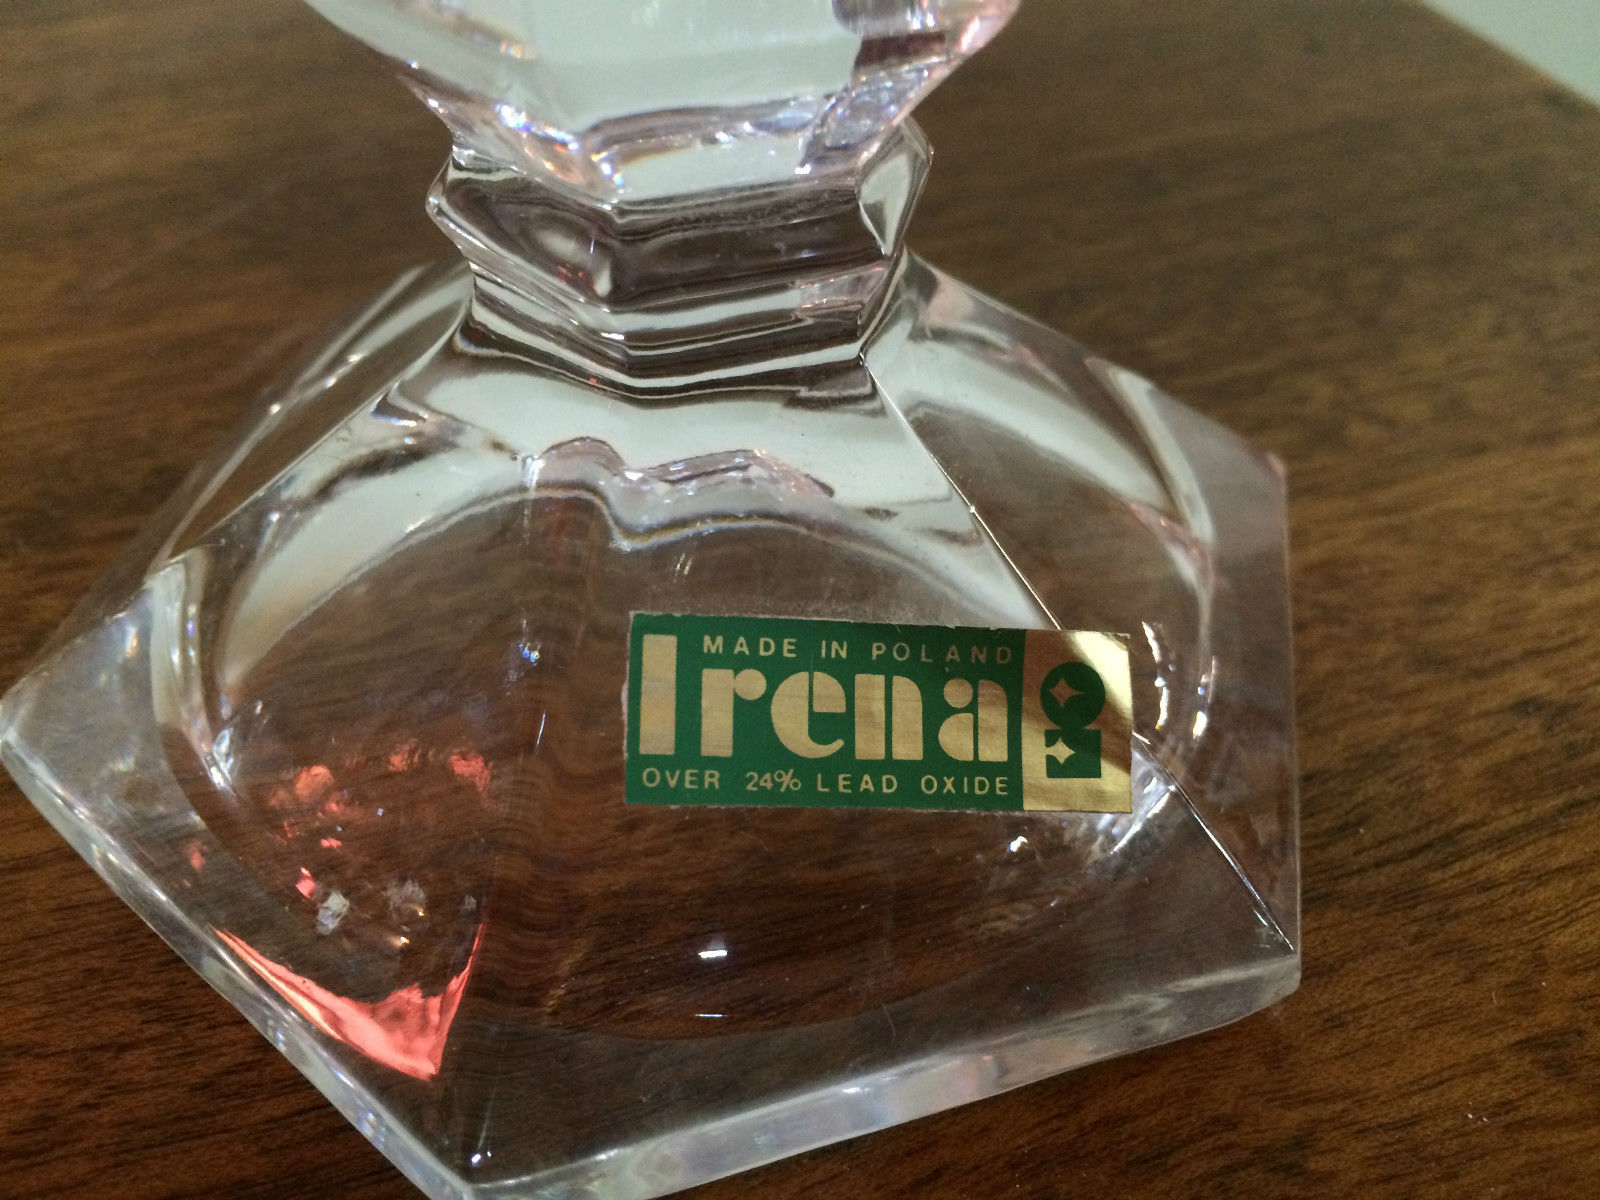 Set Of 2 Vintage Crystal Glass Candle Sticks With Label Irena Made In Poland   Melbourne   Halsey Road Recyclers